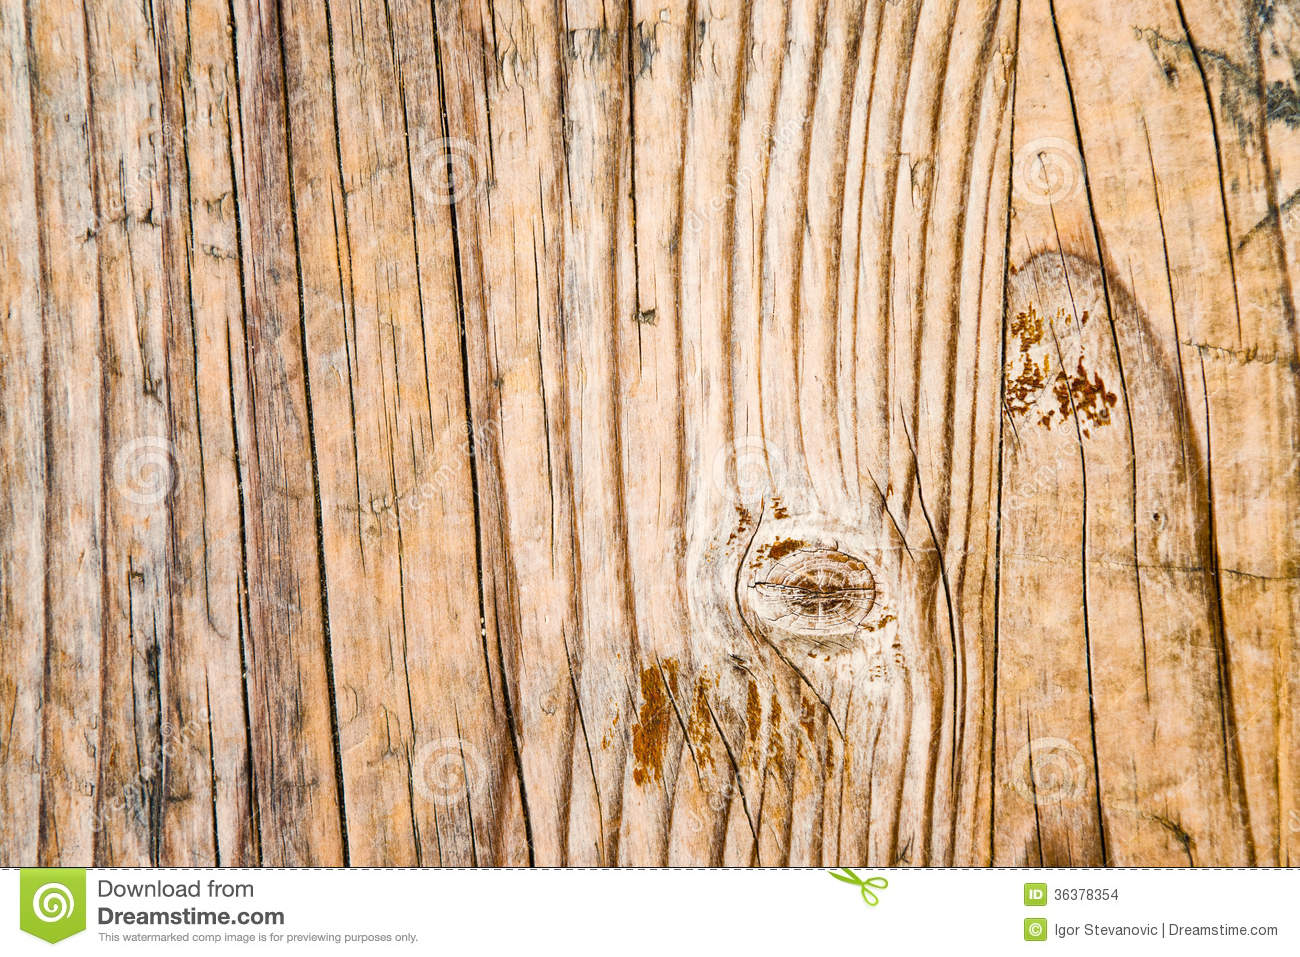 oak-wood-texture-detailed-old-as-natural-background-36378354 5 Panel Oak Interior Doors